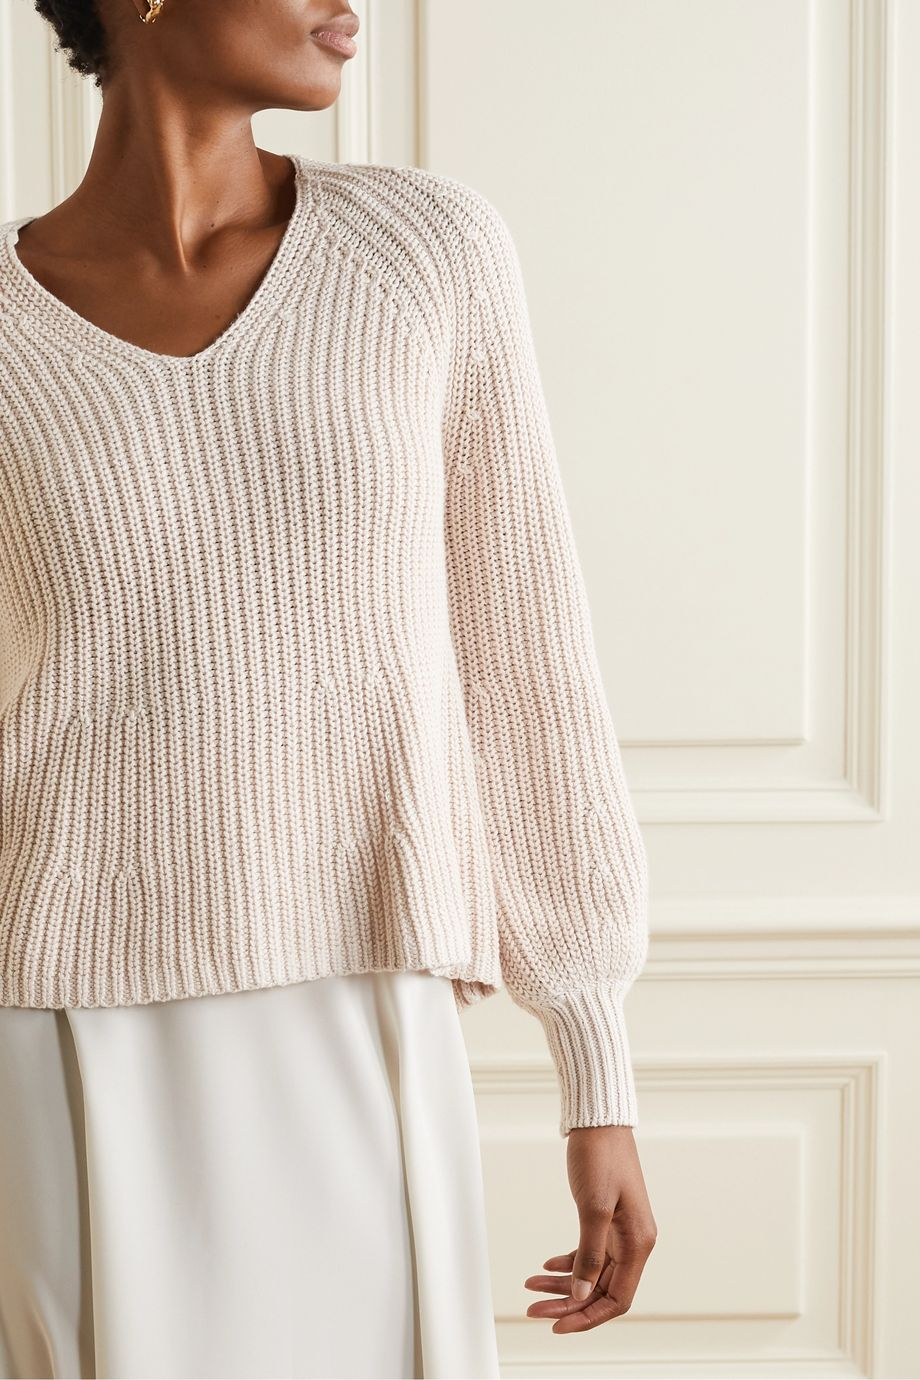 Blush Sequoia ribbed cotton and cashmere blend sweater